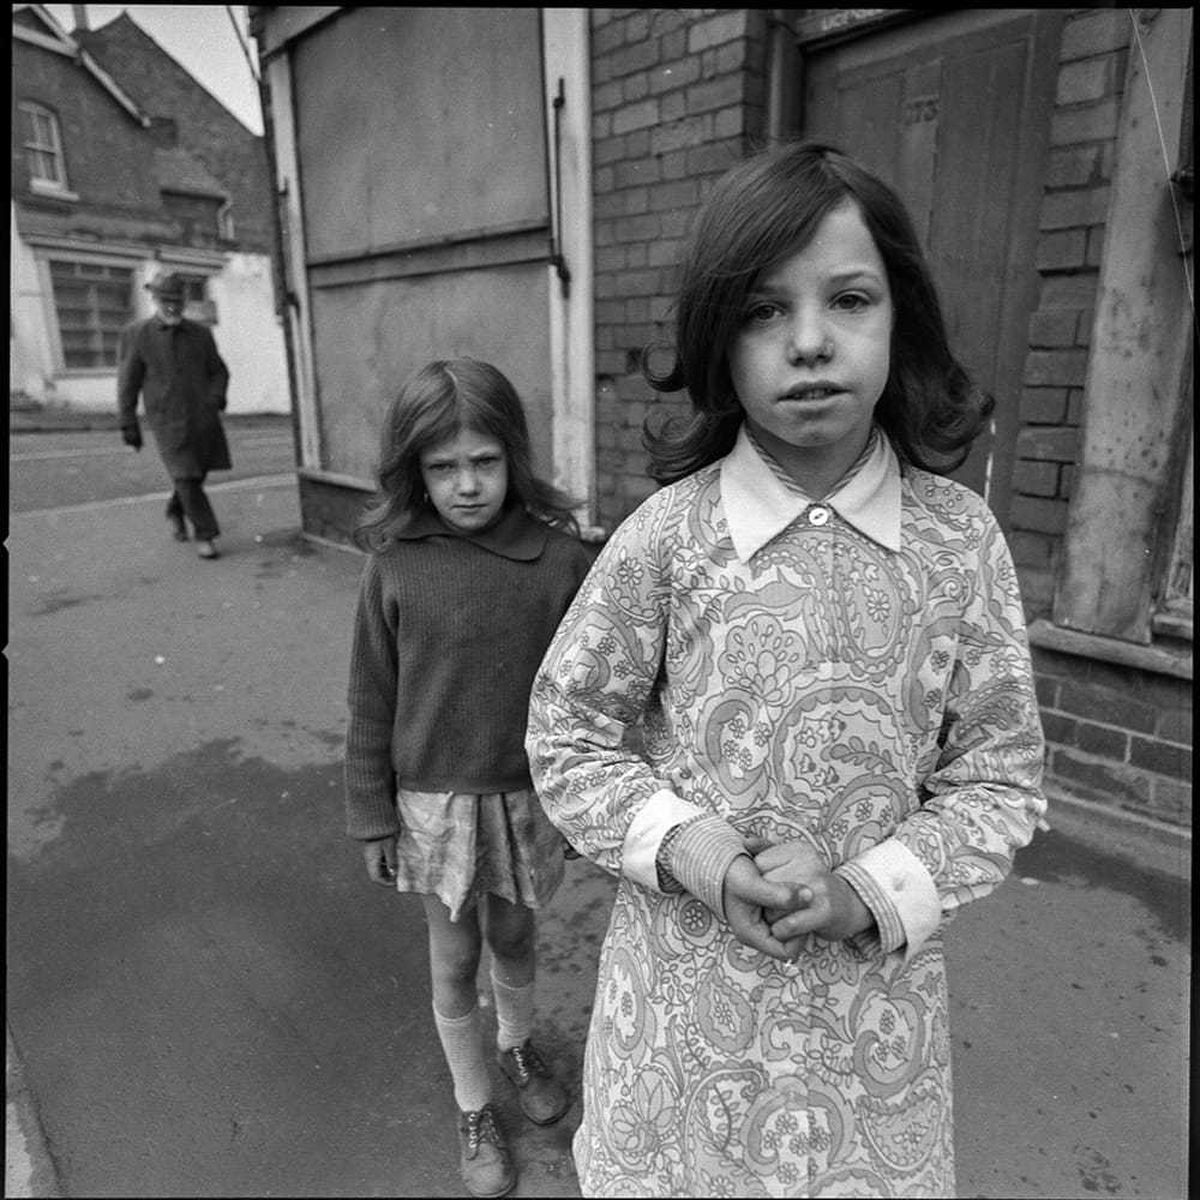 A couple of children in the North Street area of Wolverhampton